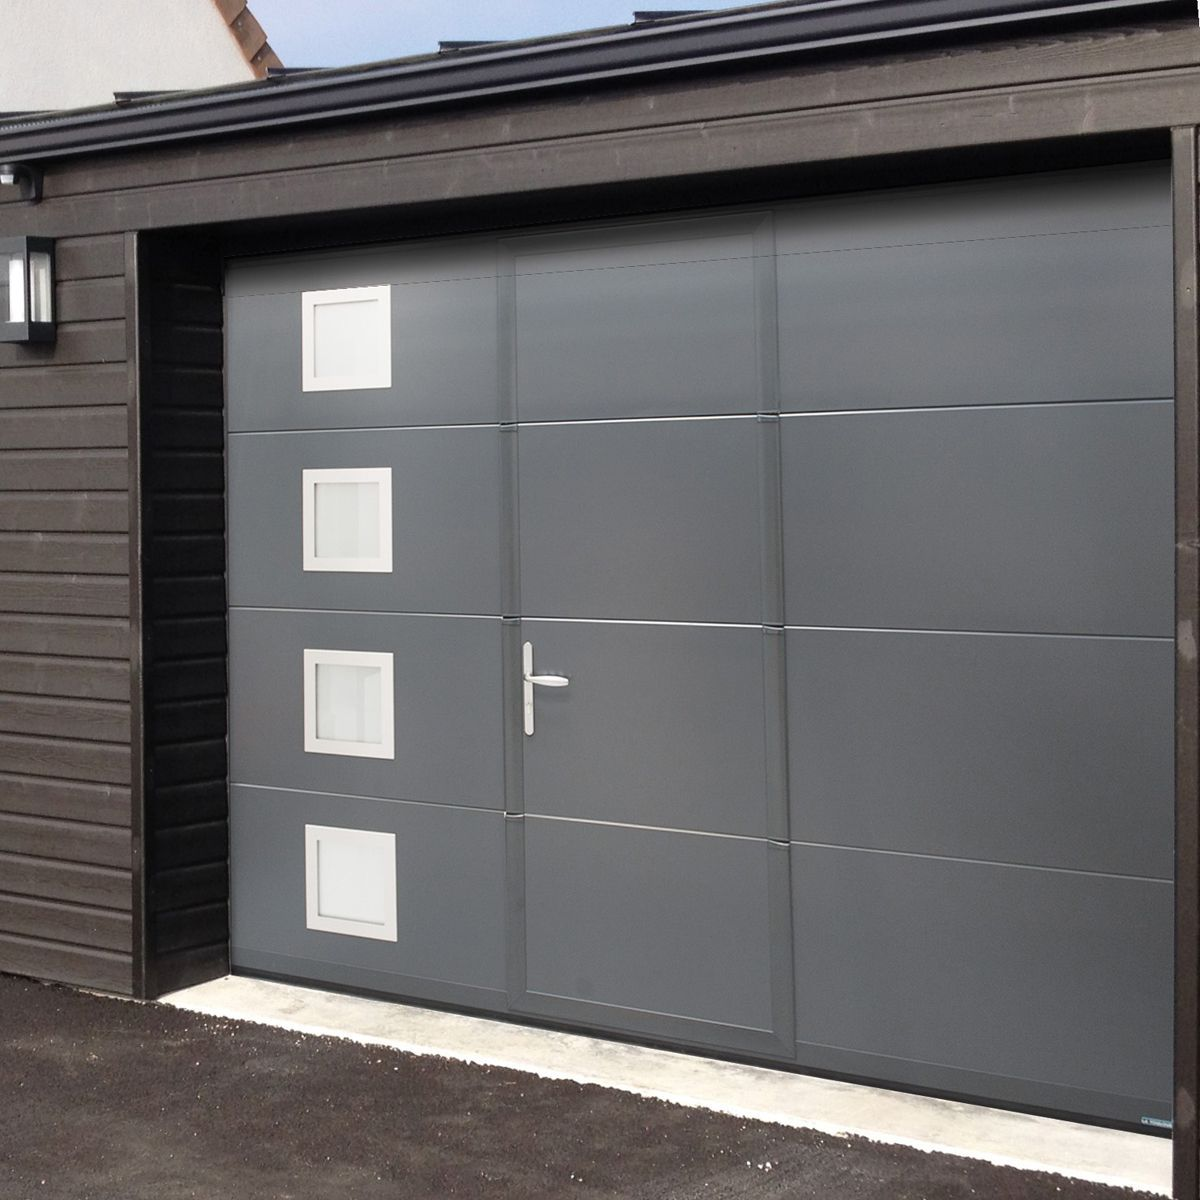 Portes de garage fabriqu es en france sur mesure isoferm for Porte de garage couleur bordeaux